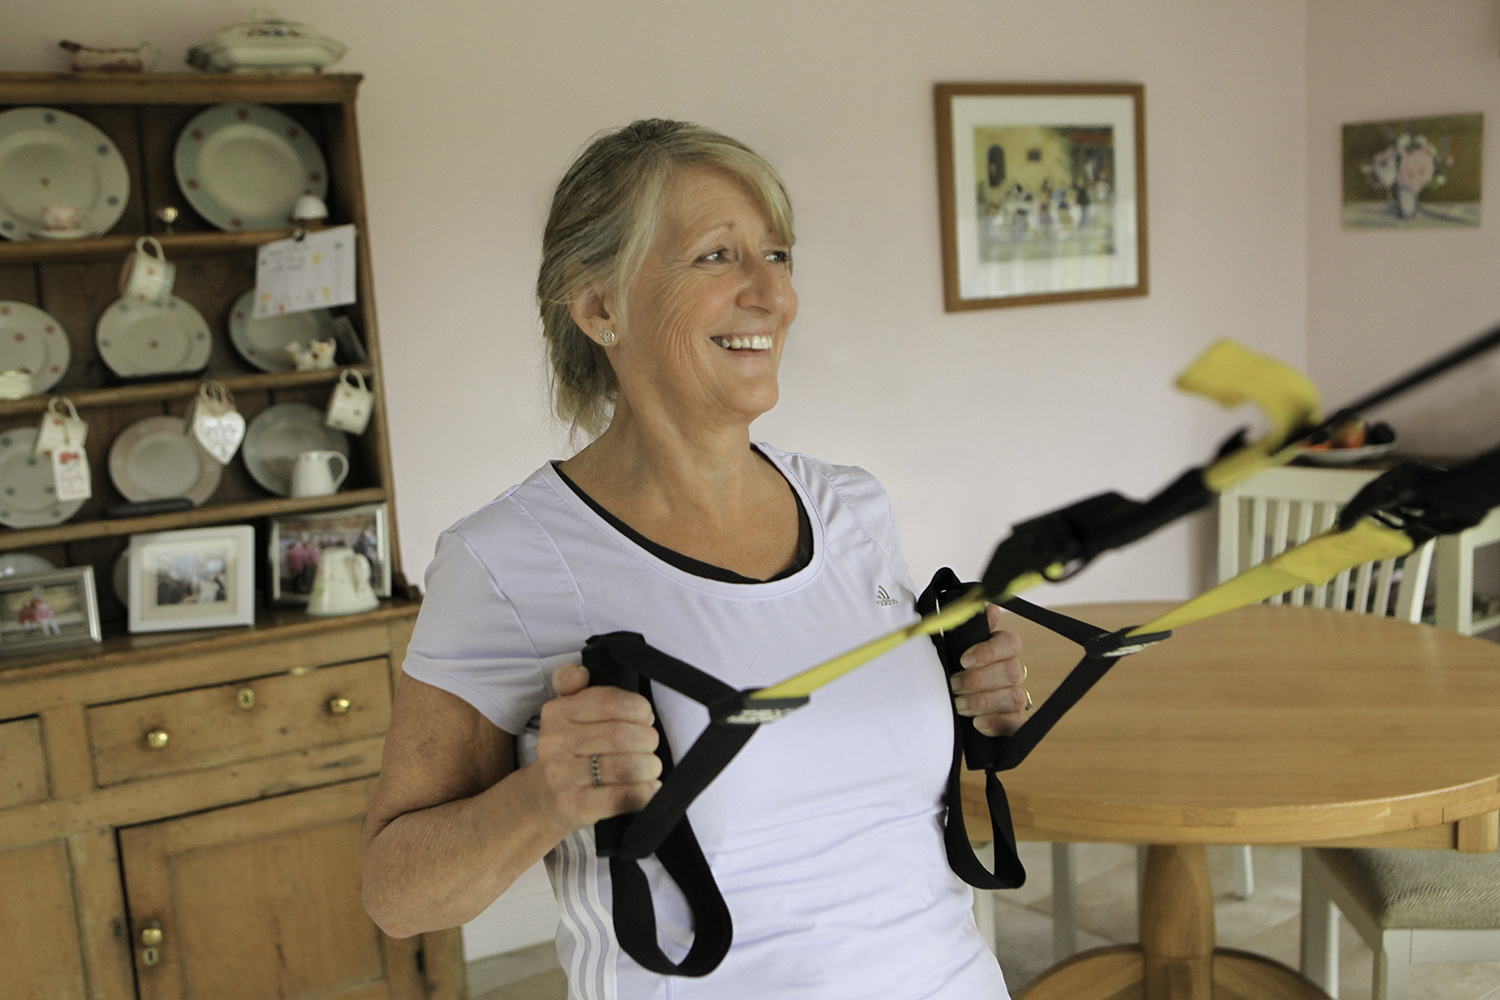 PERSONAL TRAINING - Sessions delivered in homes, offices and gardensTrain one-to-one or with friends and family